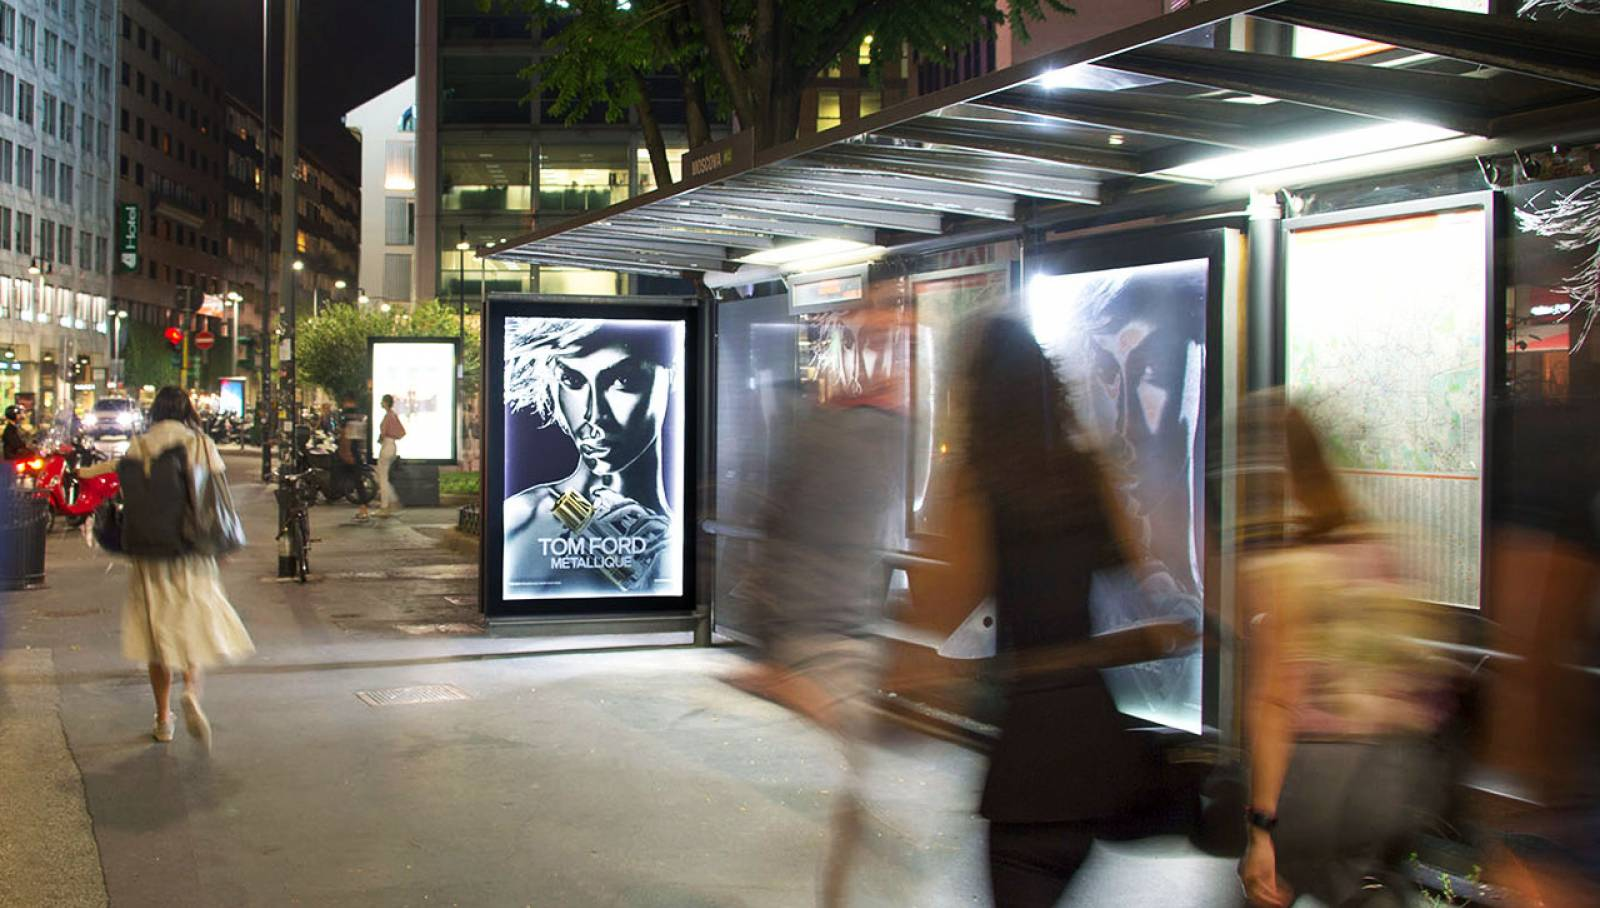 OOH IGPDecaux Milan brand shelters Tom Ford